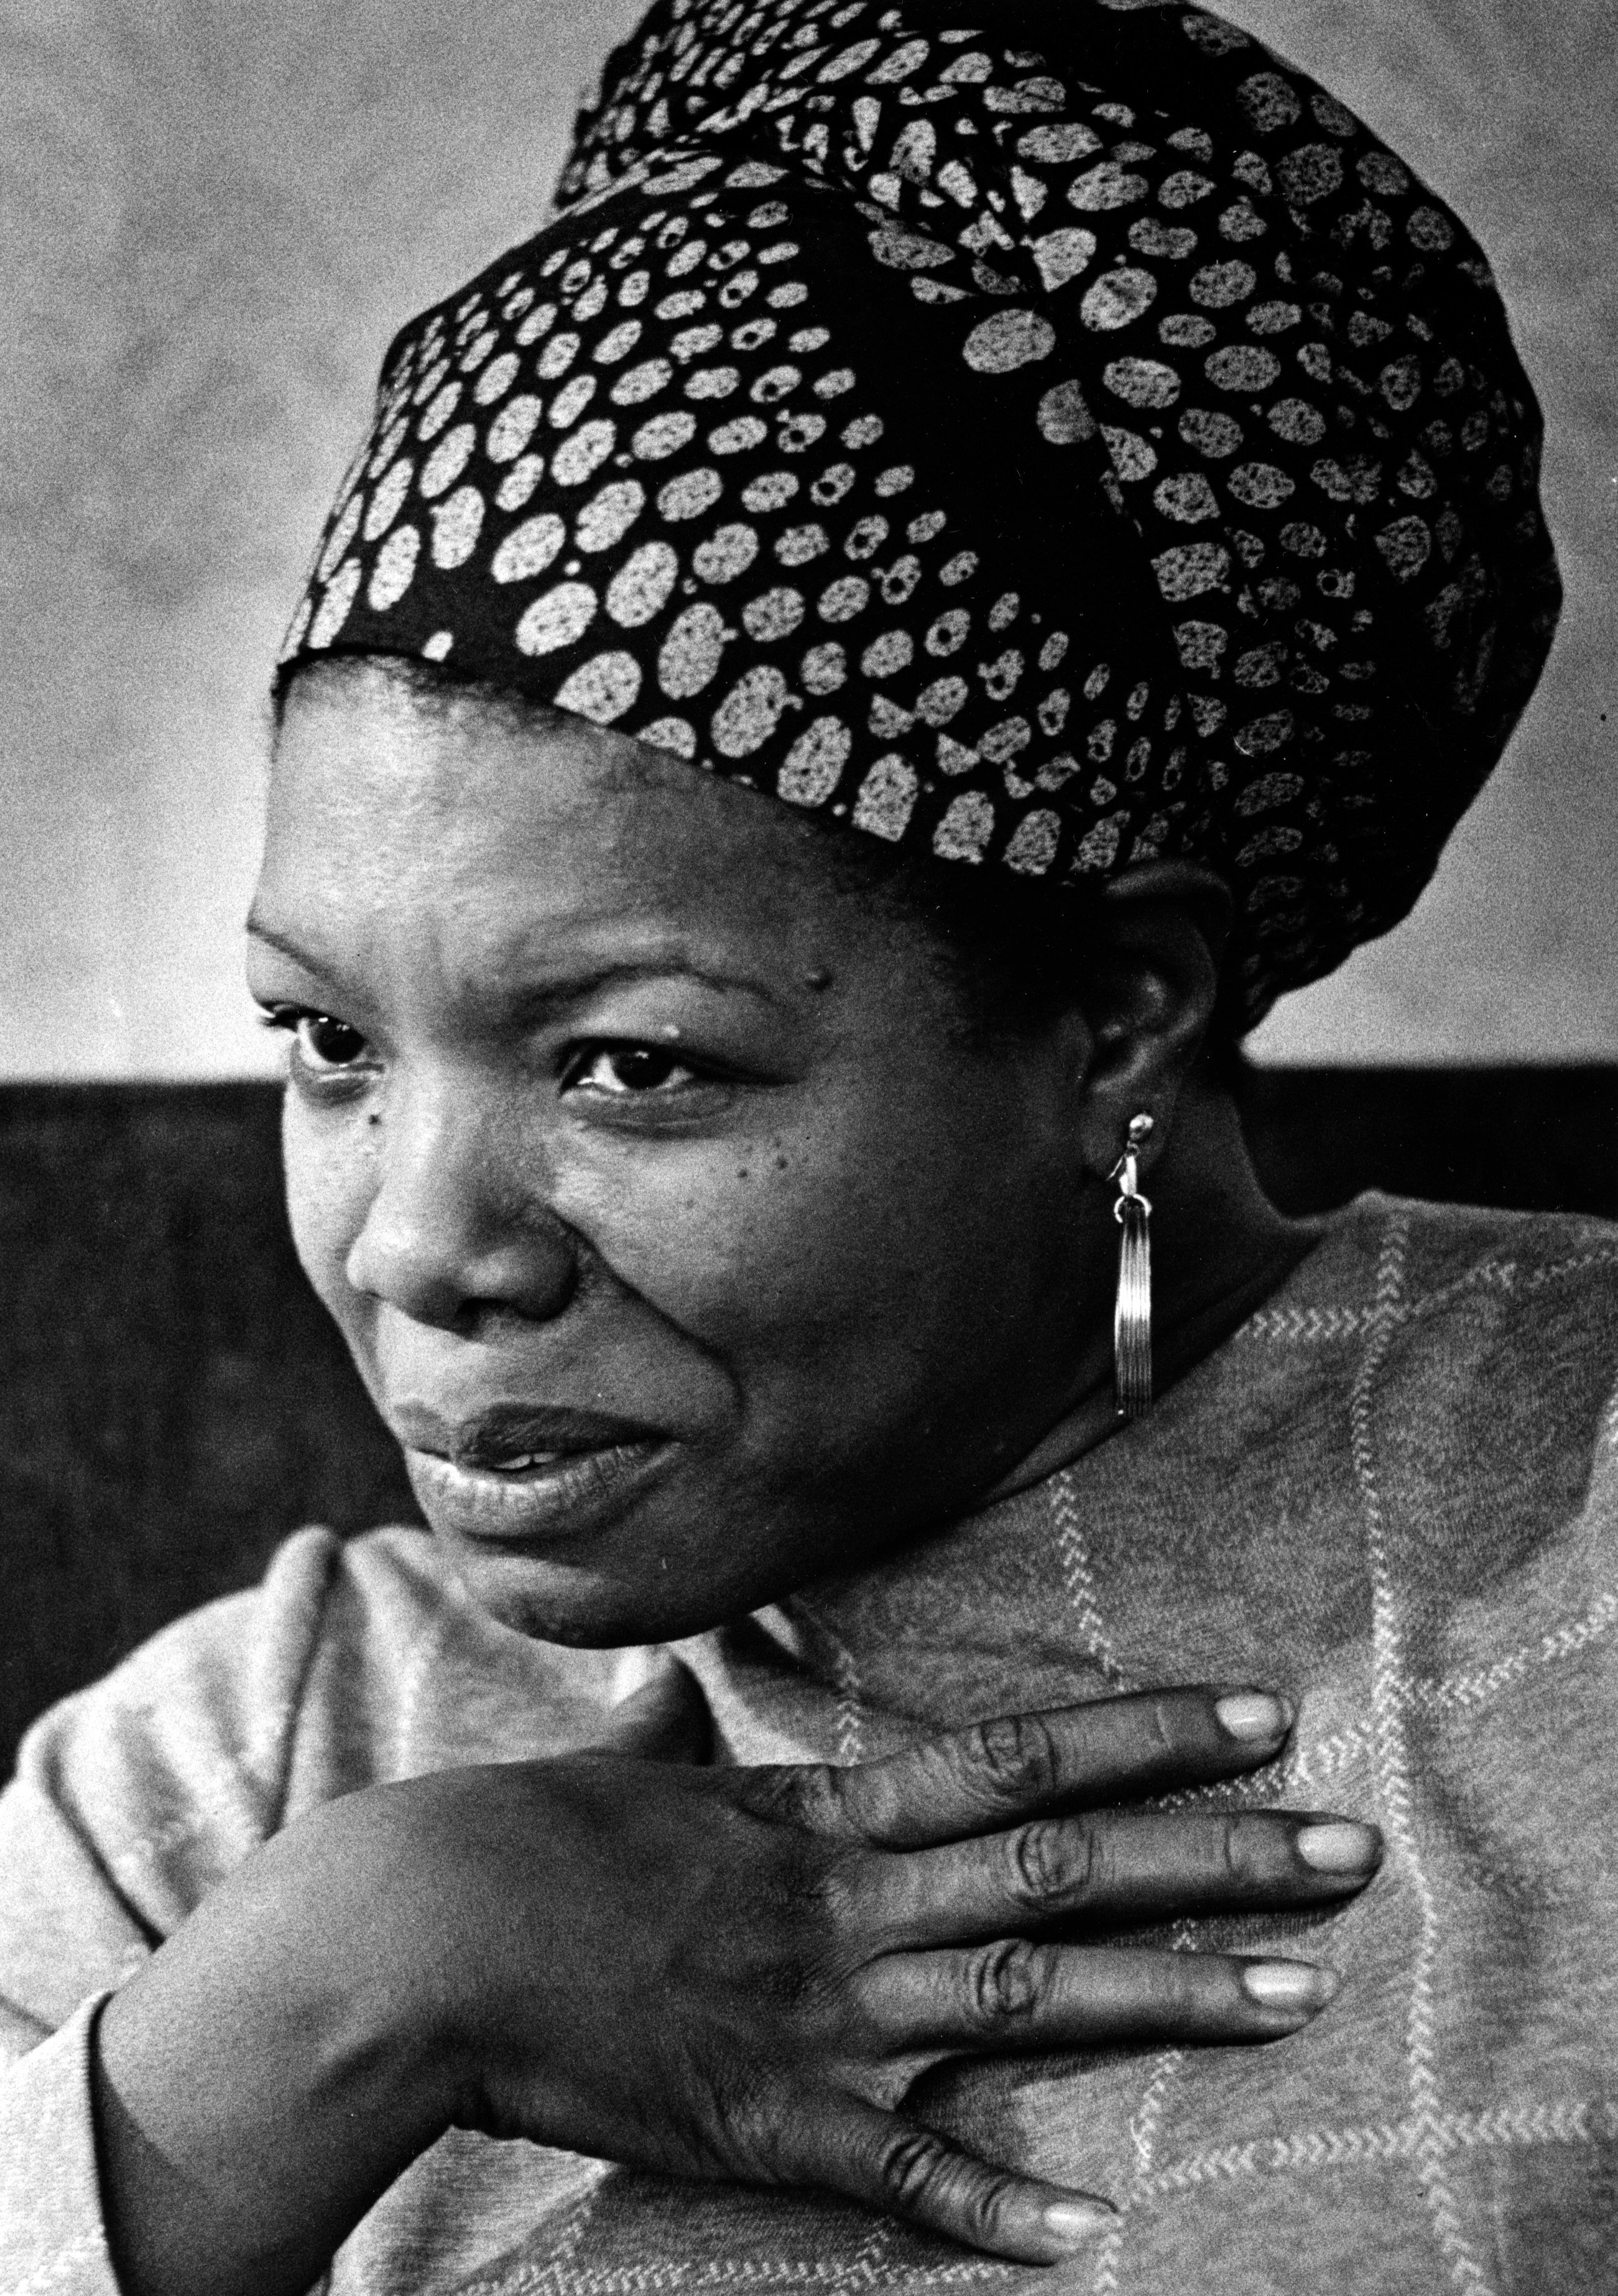 WASHINGTON, DC - JUNE 3: FILE: Maya Angelou poses for a portrait during an interview in Washington, D.C. on June 3, 1974. (Photo by Craig Herndon / The Washington Post via Getty Images)